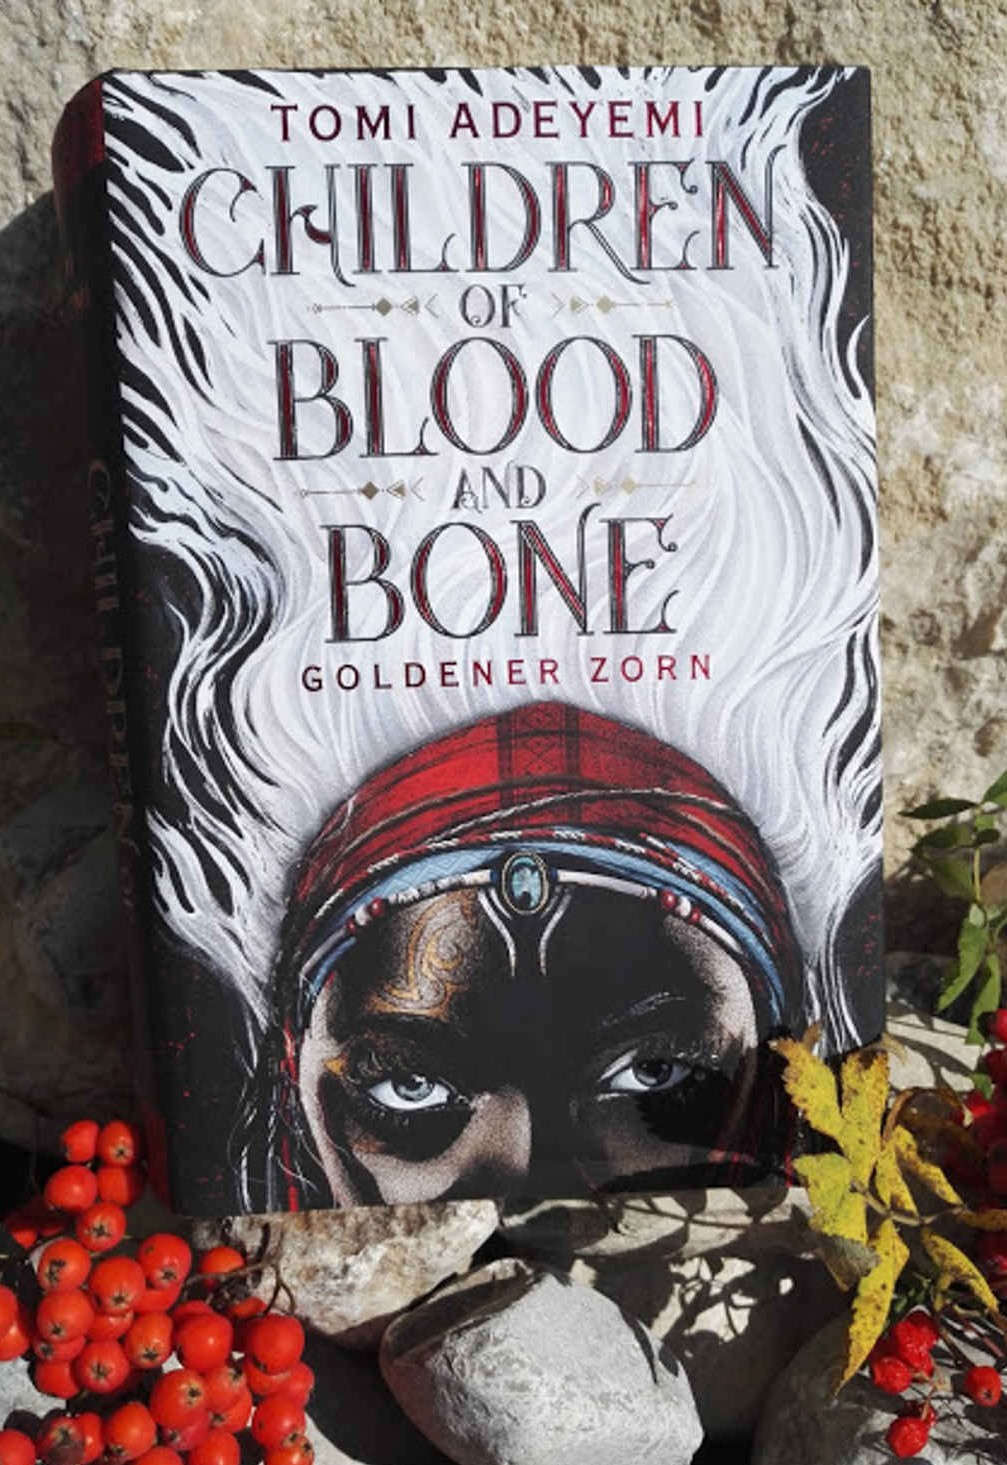 Tomi Adeyemi Children of Blood and Bone: Goldener Zorn